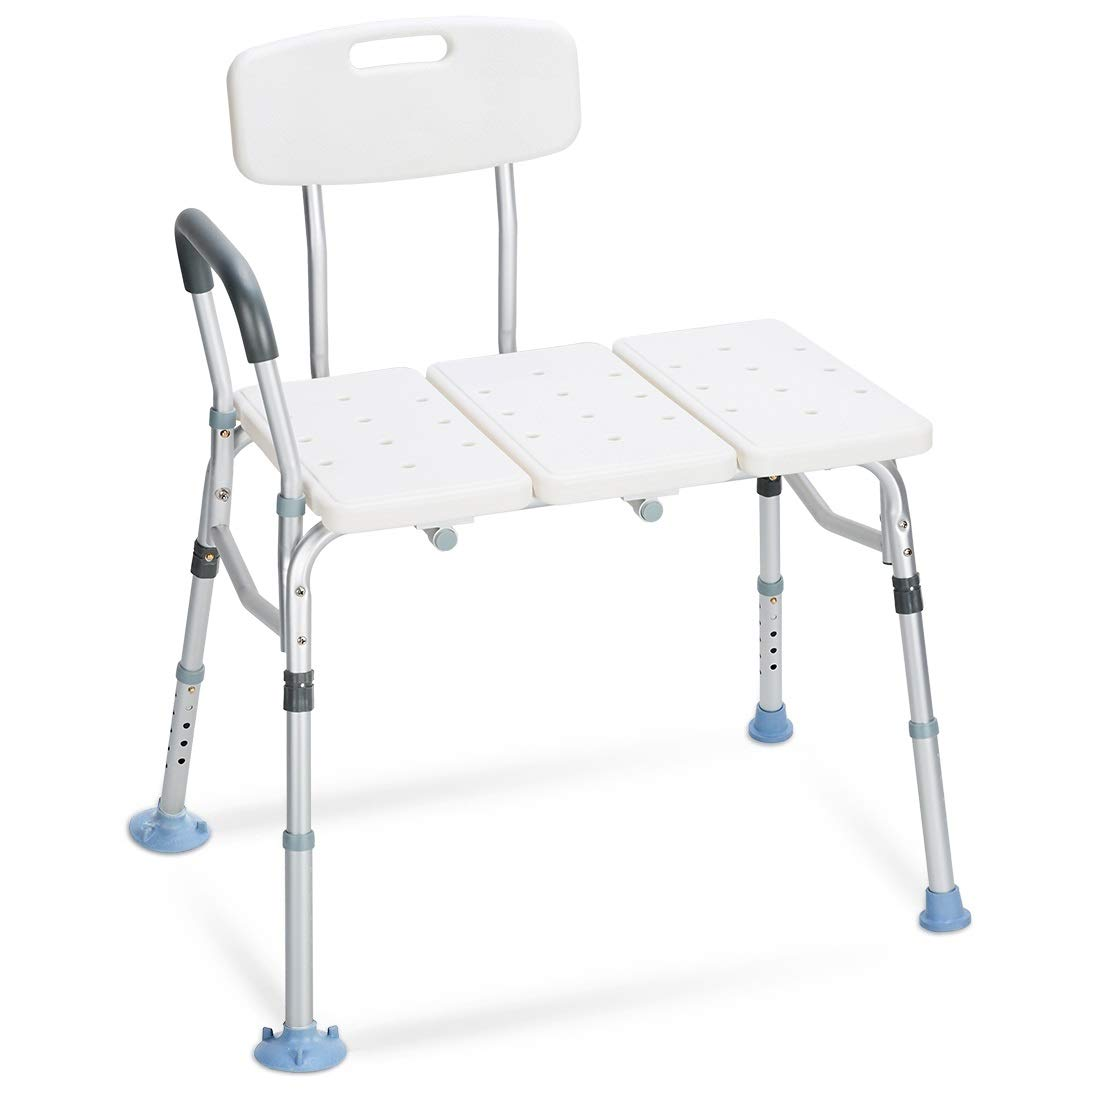 OasisSpace Tub Transfer Bench 400 lb - Heavy Duty Bath & Shower Transfer Bench - Adjustable Handicap Shower Chair with Reversible Backrest Medical Bathroom Aid for Disabled, Seniors, Bariatric(400lbs) by OasisSpace